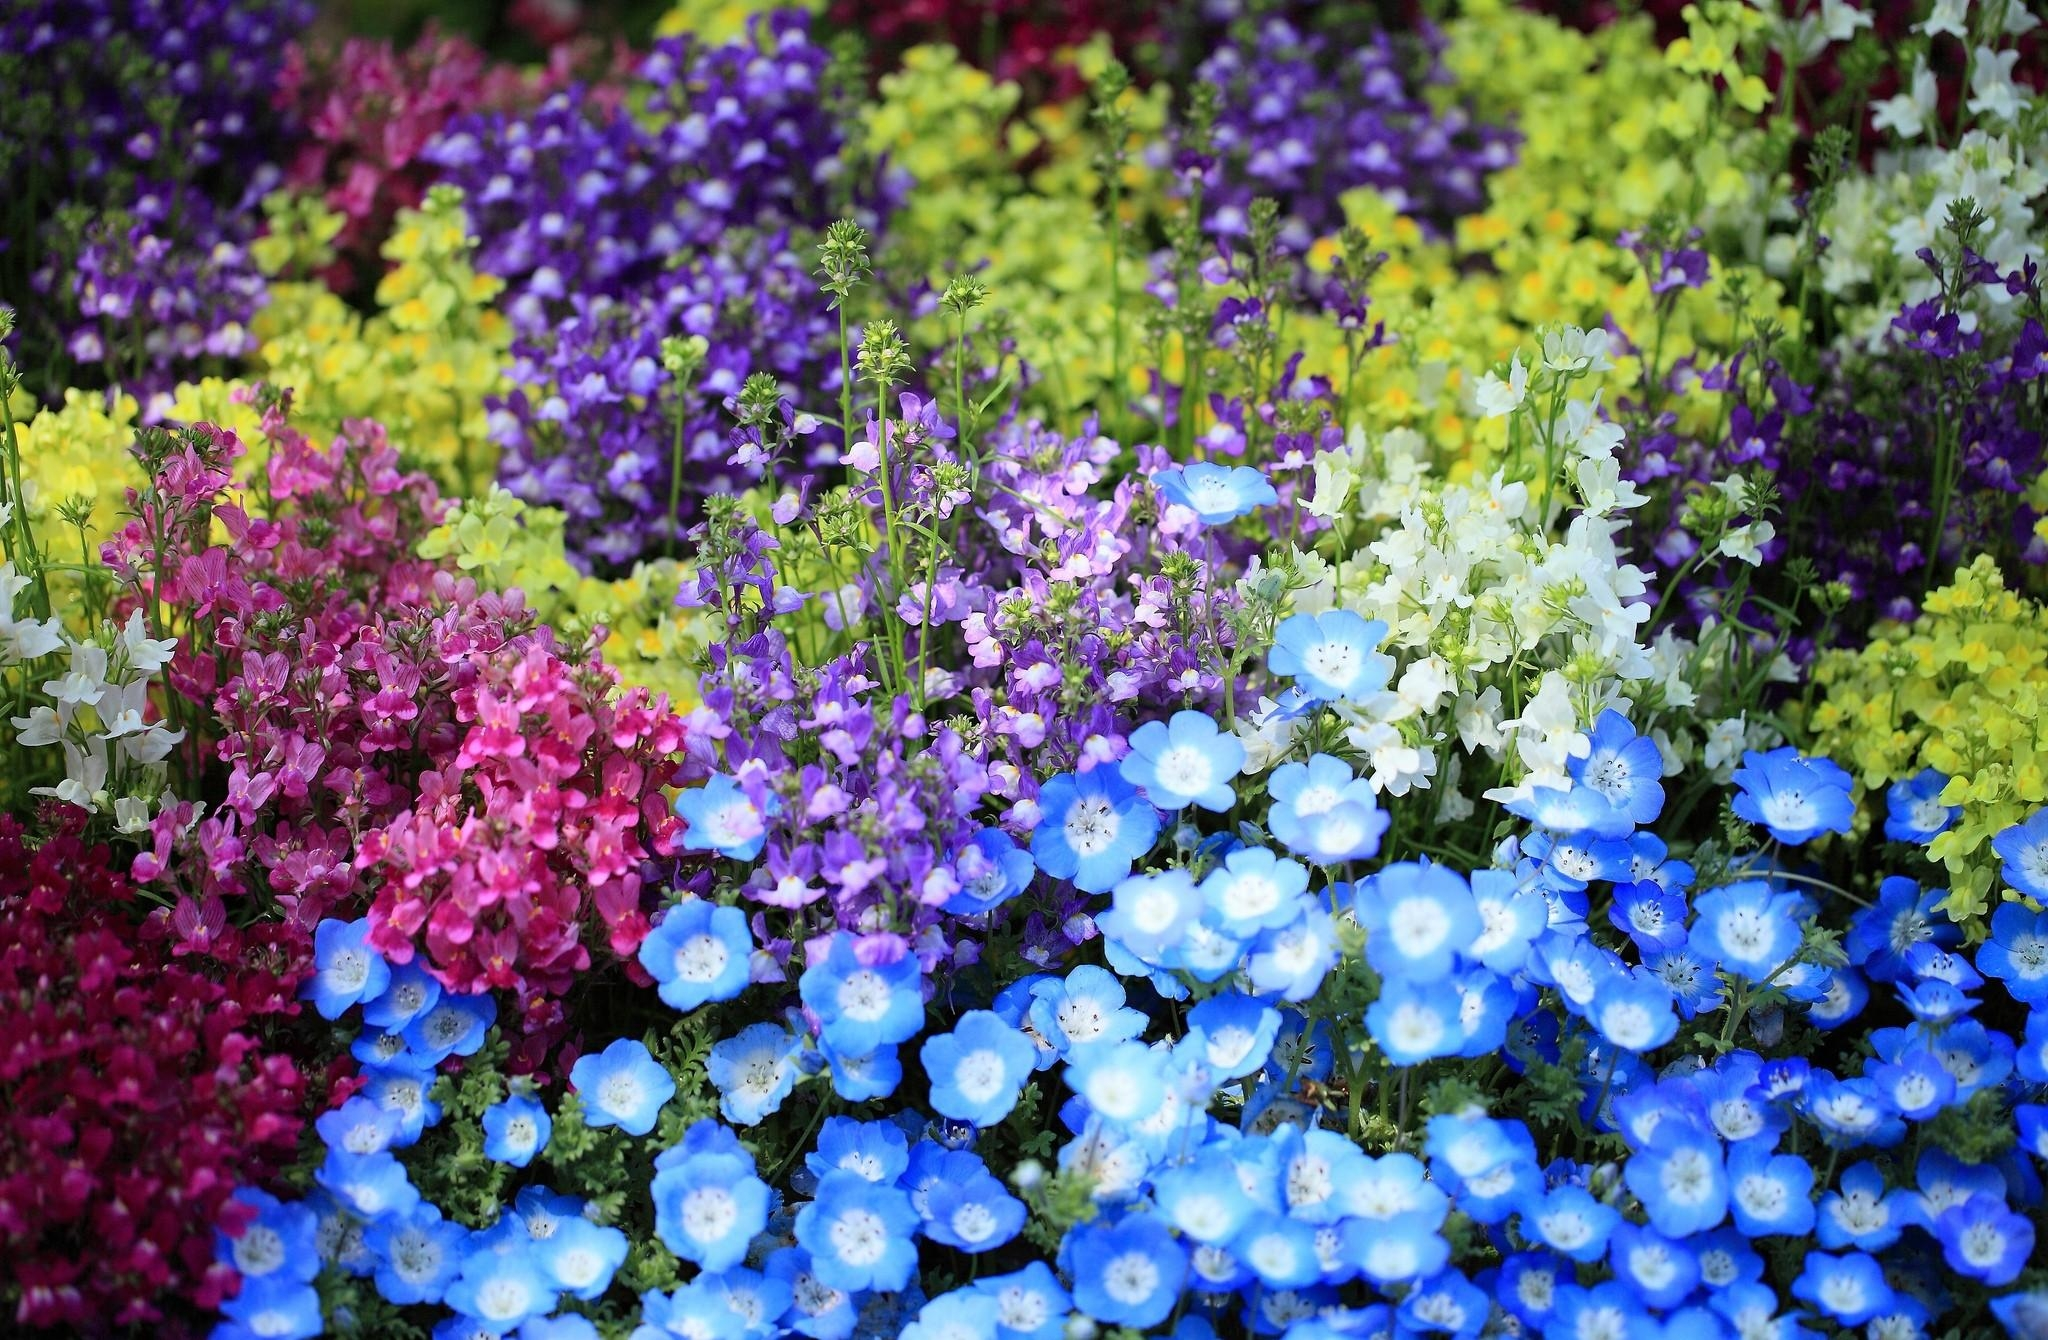 140653 download wallpaper Flowers, Nemophiles, Snapdragon, Flower Bed, Flowerbed, Brightly, Colorfully, Graphically screensavers and pictures for free